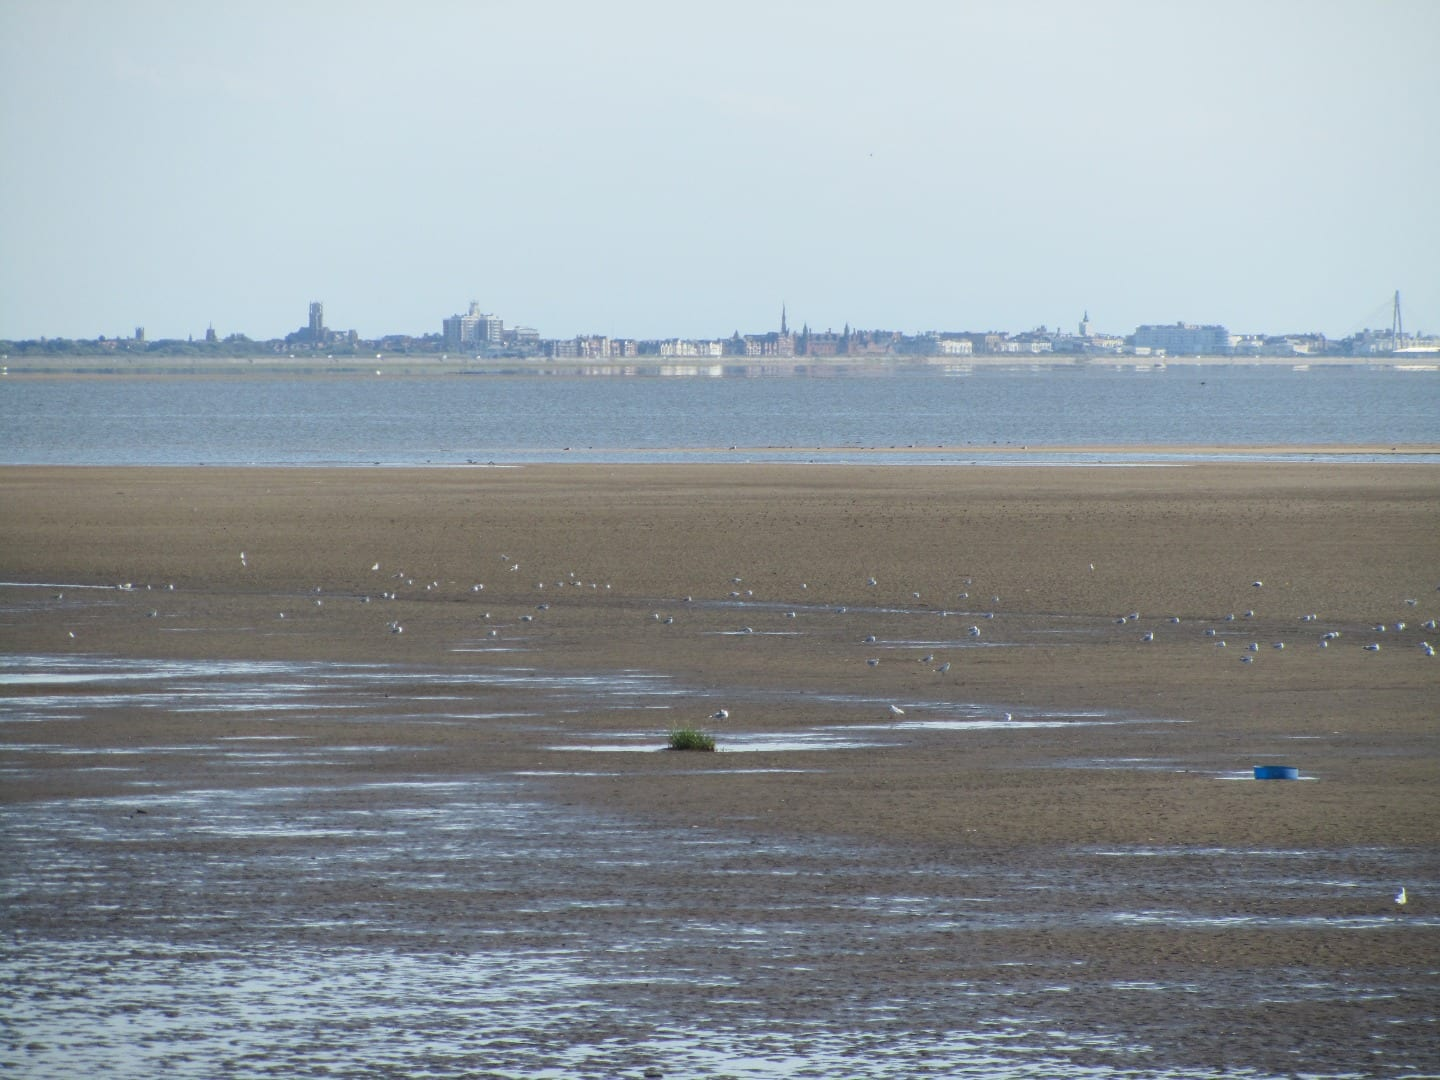 Southport seen from Lytham, one of the amazing views from the seafront